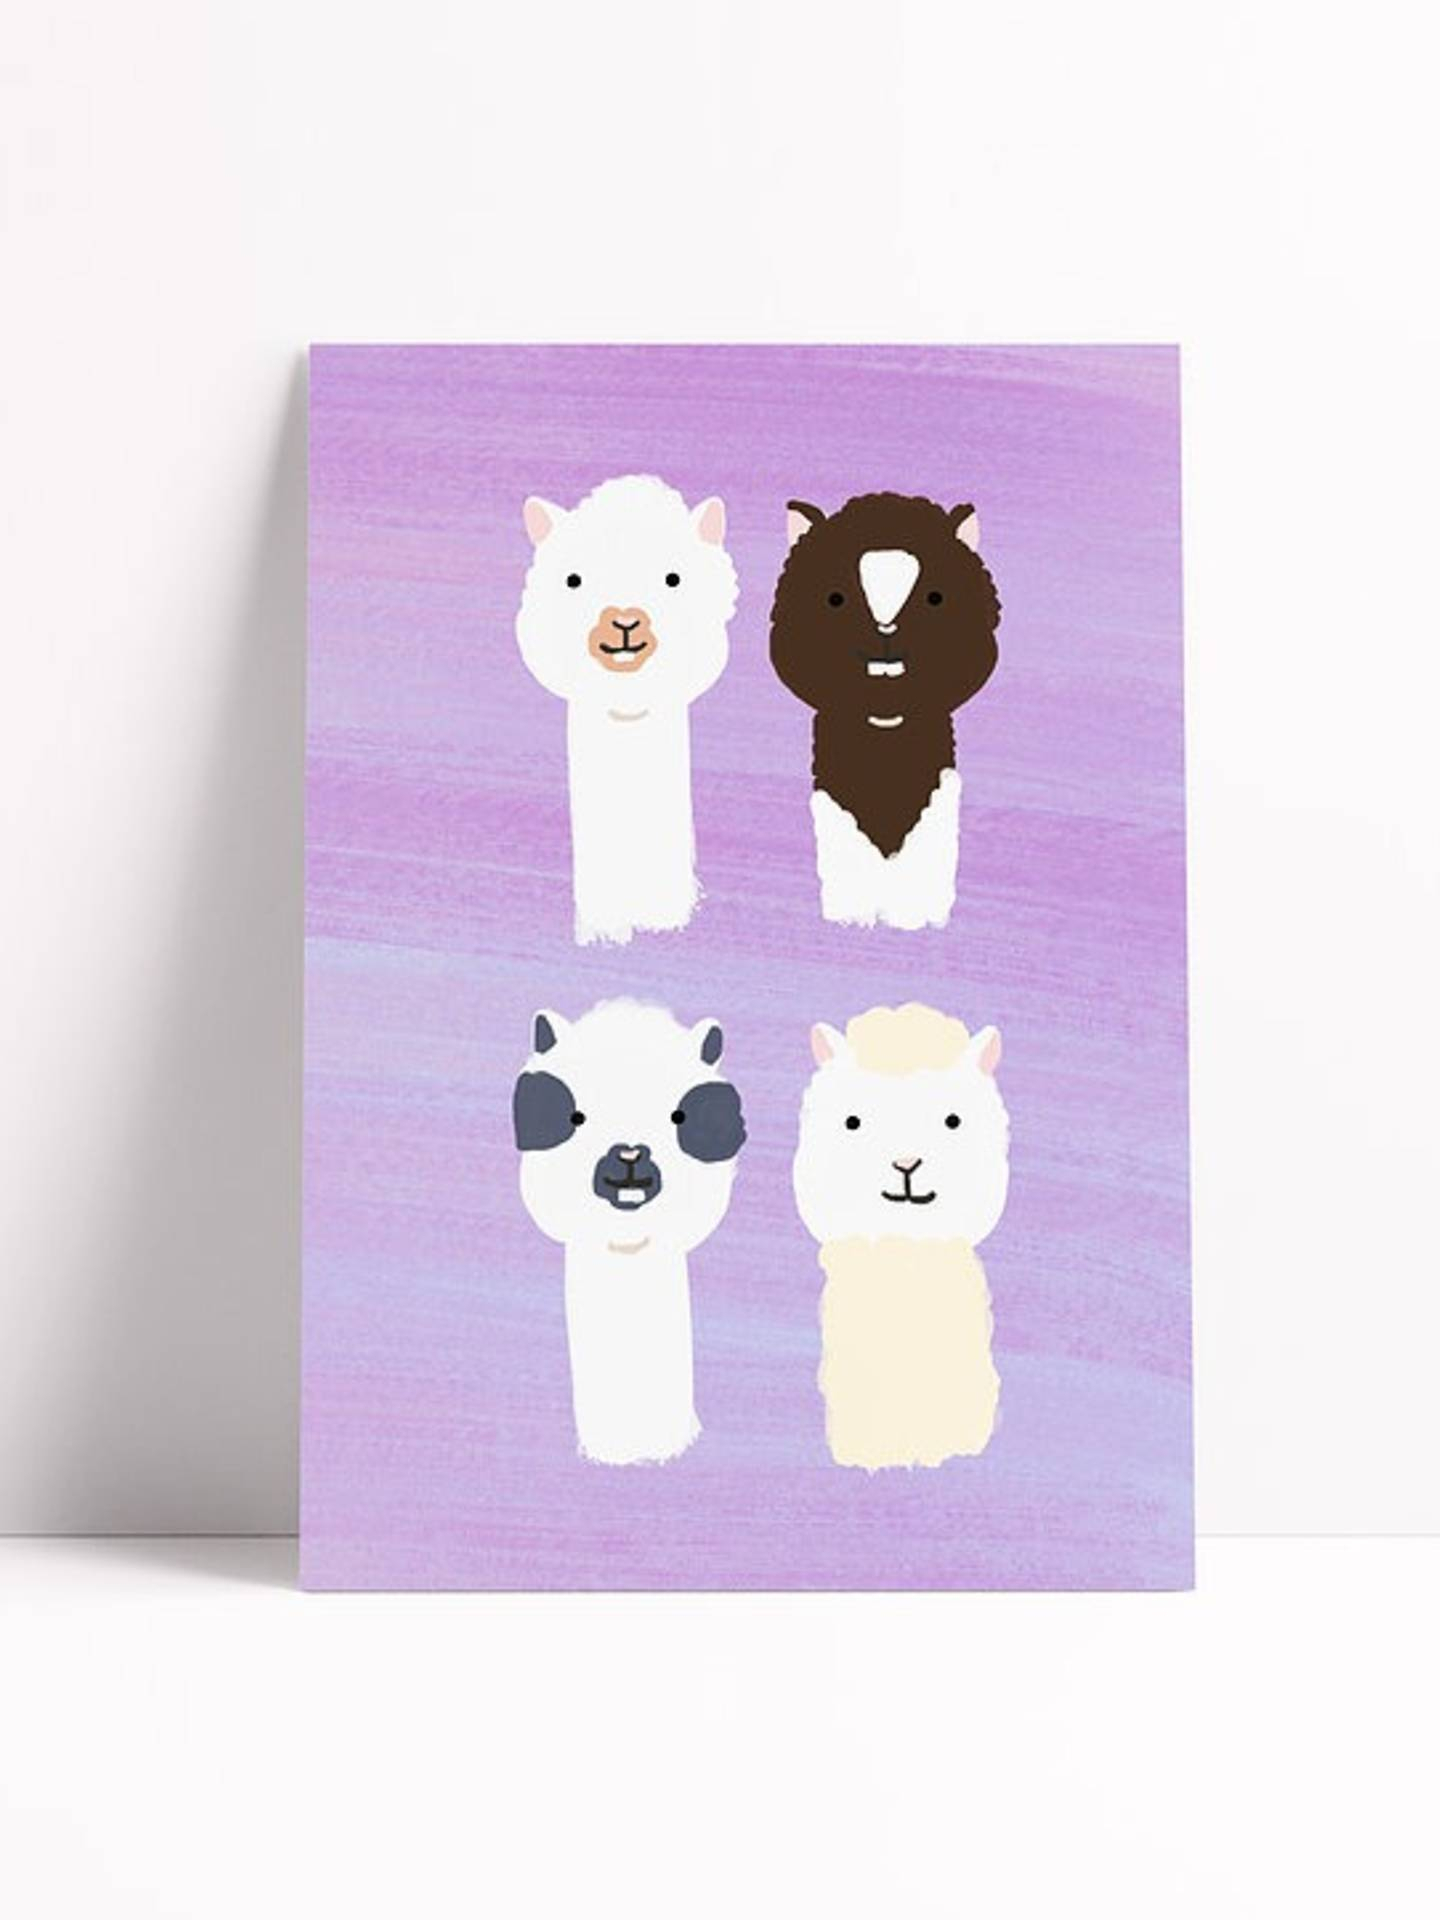 Goodbye 2020: Super-Cute Planners From Local Brands For A with regard to 2021-2021 2 Year Planner Llama Monthly